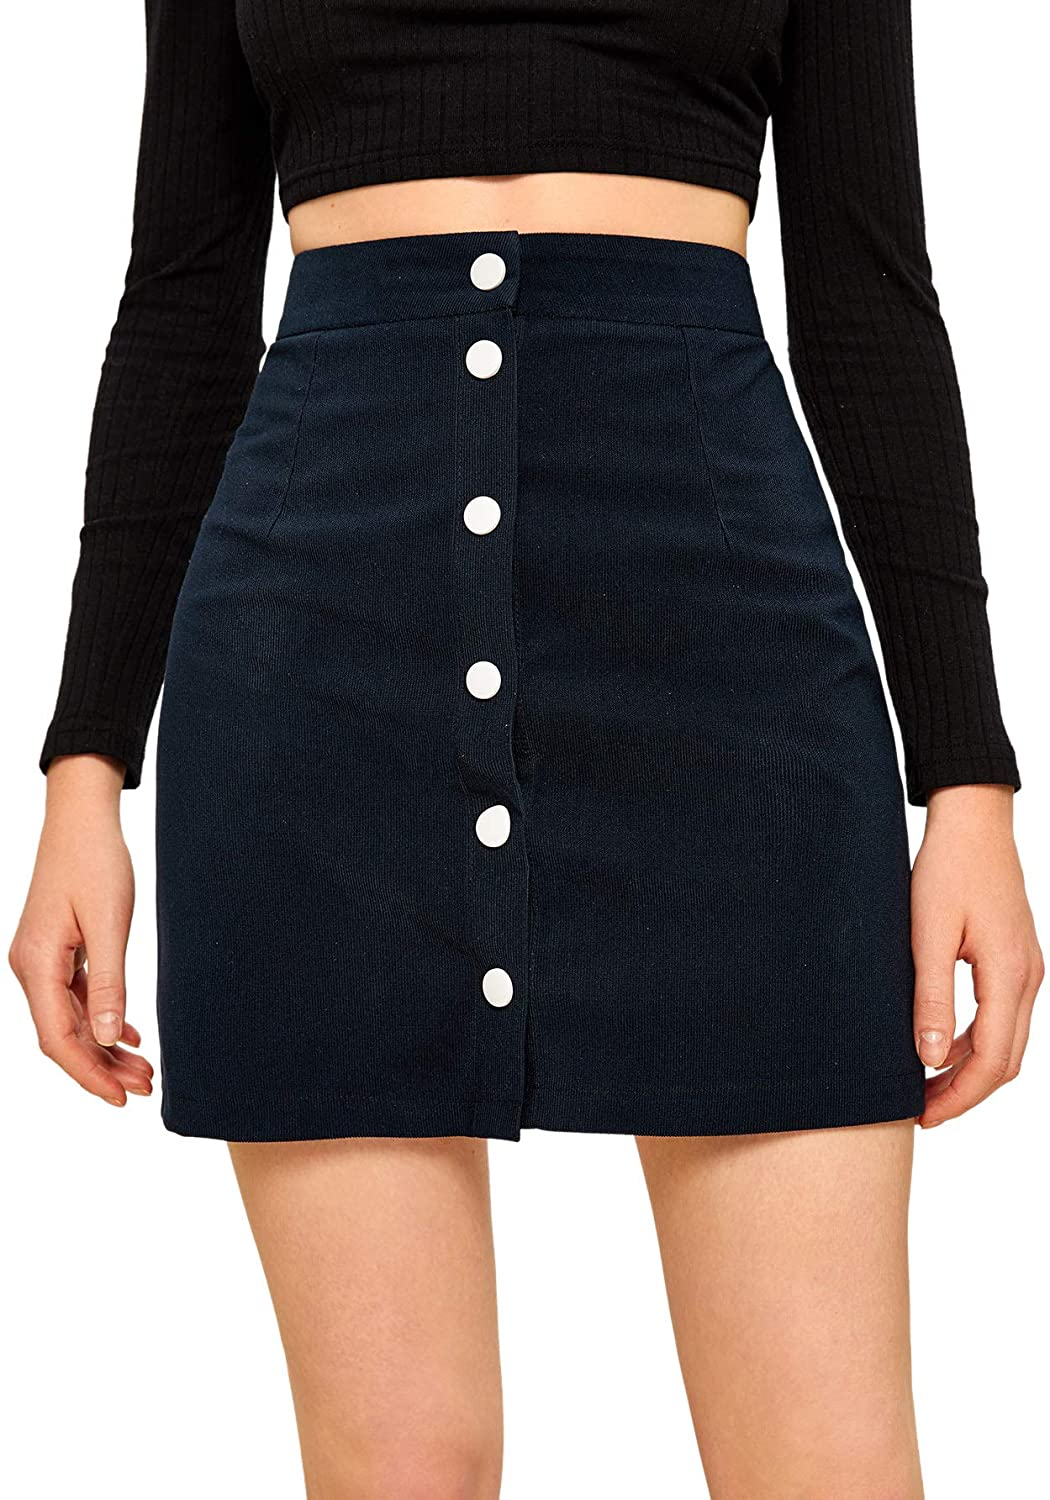 SweatyRocks Women's Casual High Waist Button Down Corduroy A Line Mini Skirt